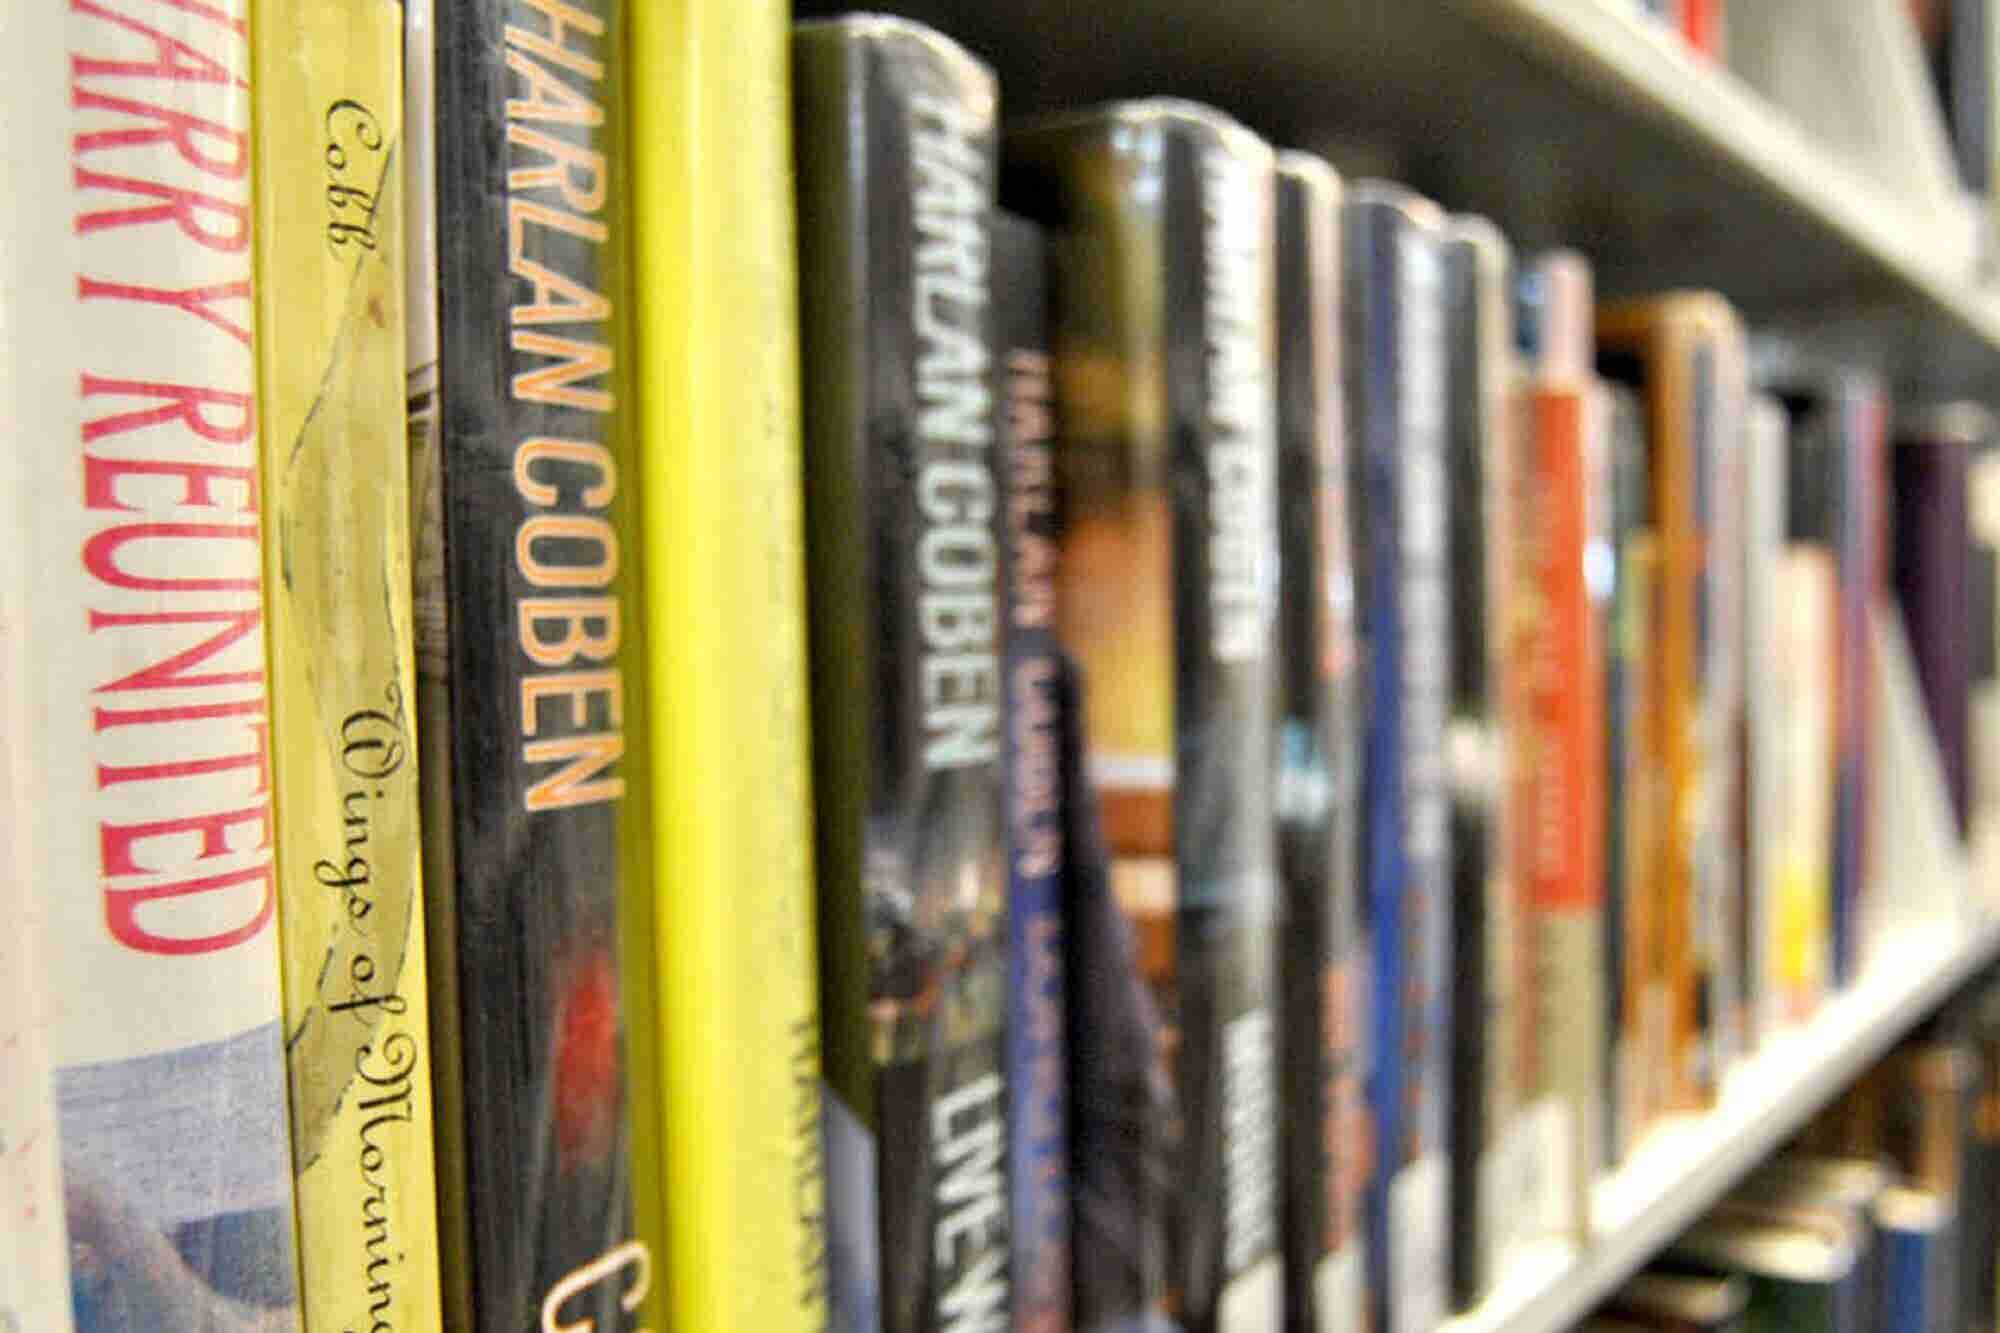 This Online Library Franchisee Opportunities to Women and Men in 3 Different Business Models